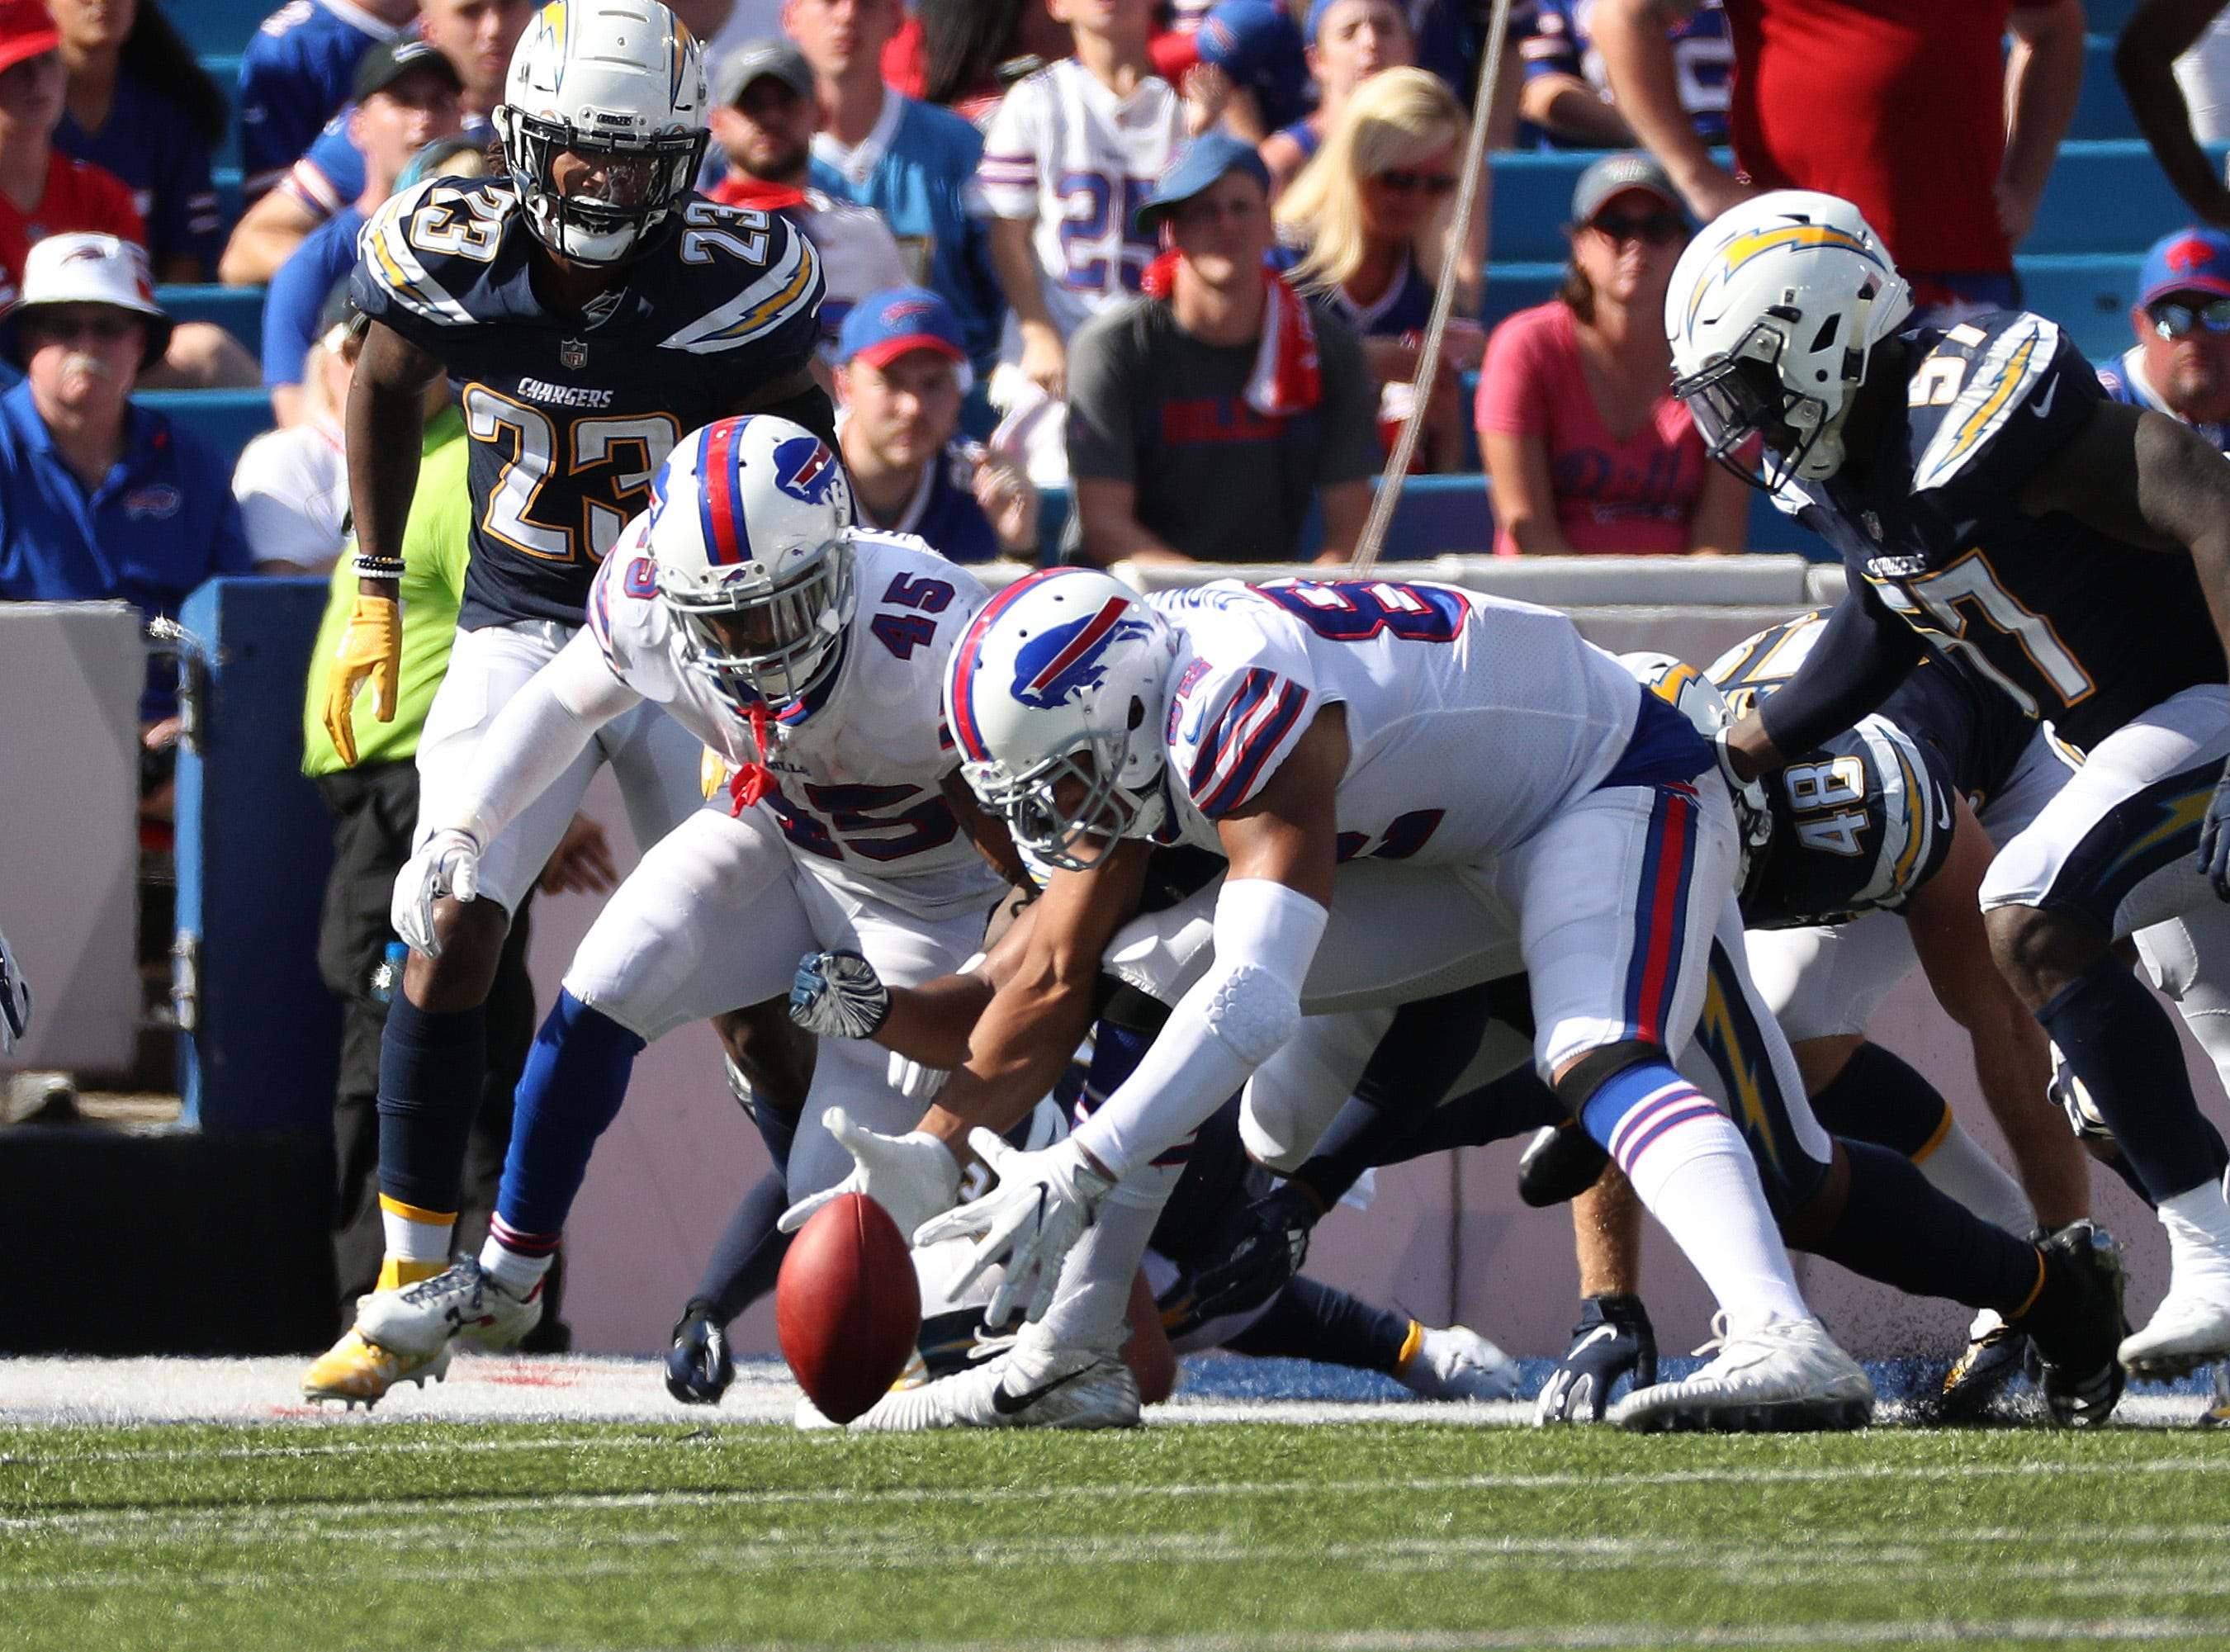 Bills Logan Thomas and Marcus Murphy recover a punt  at the one yard line.